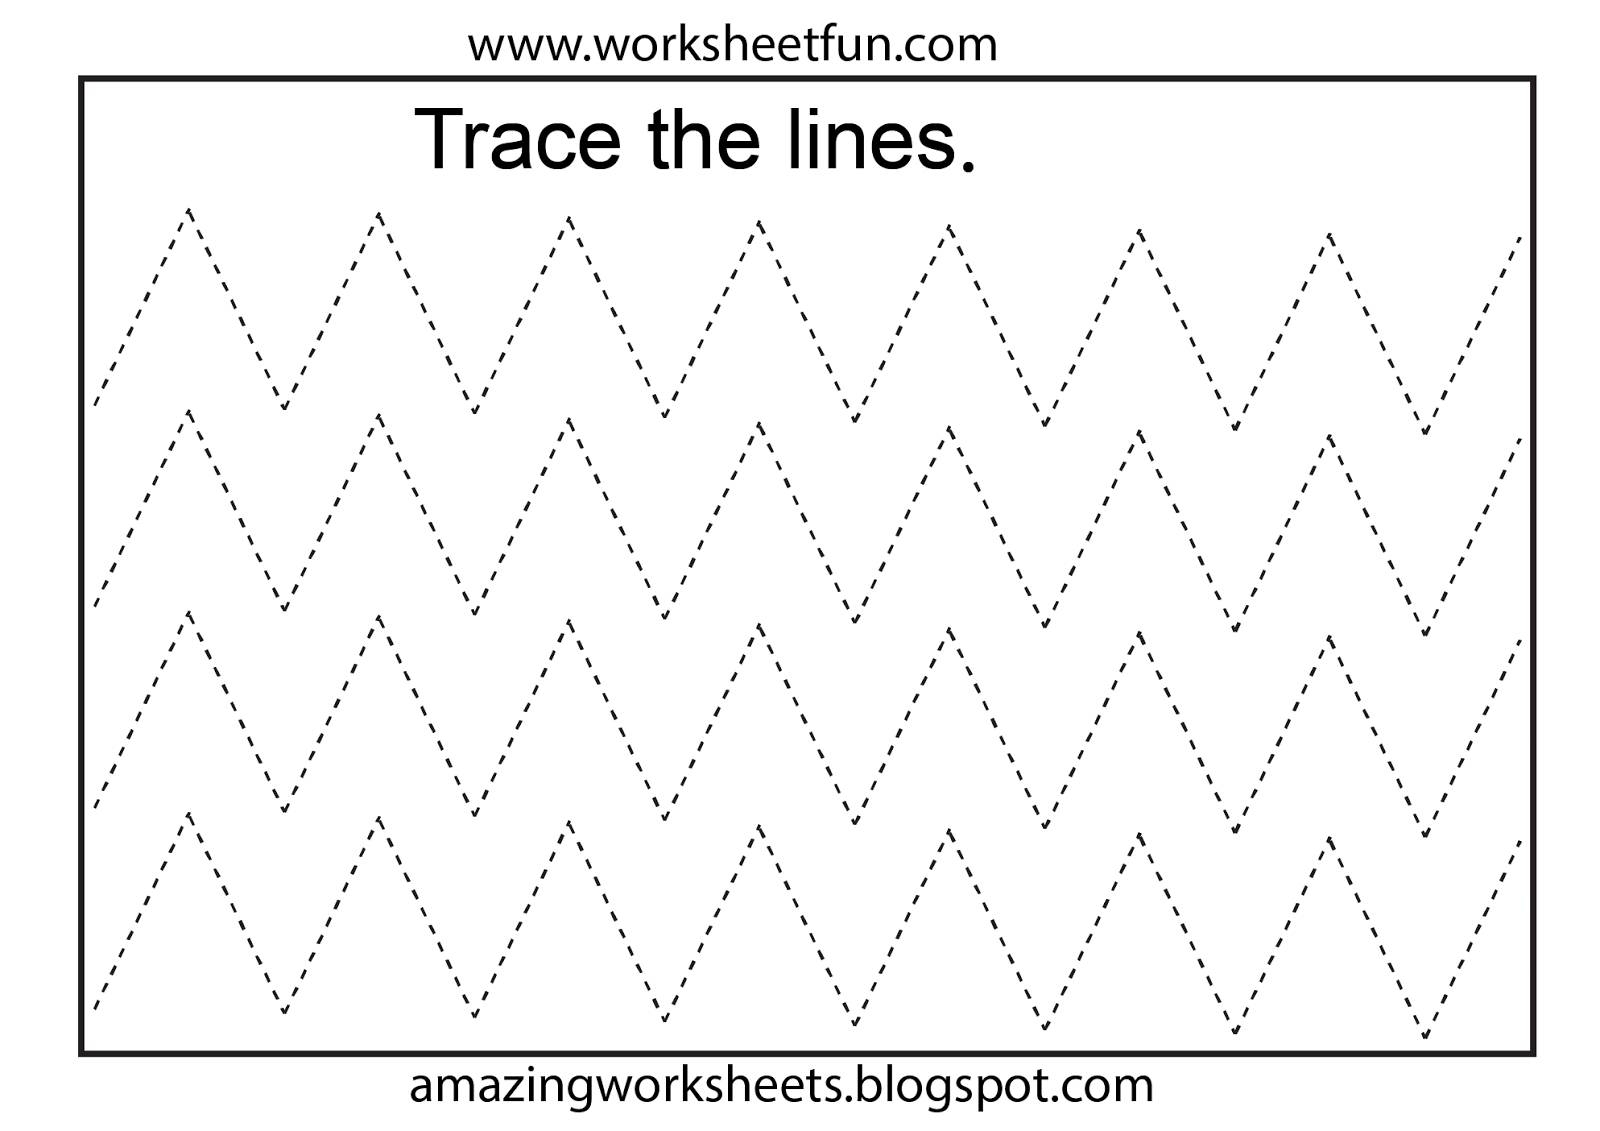 Free Printable Tracing Worksheets Preschool | Preschool Worksheets | Free Printable Cutting Worksheets For Kindergarten